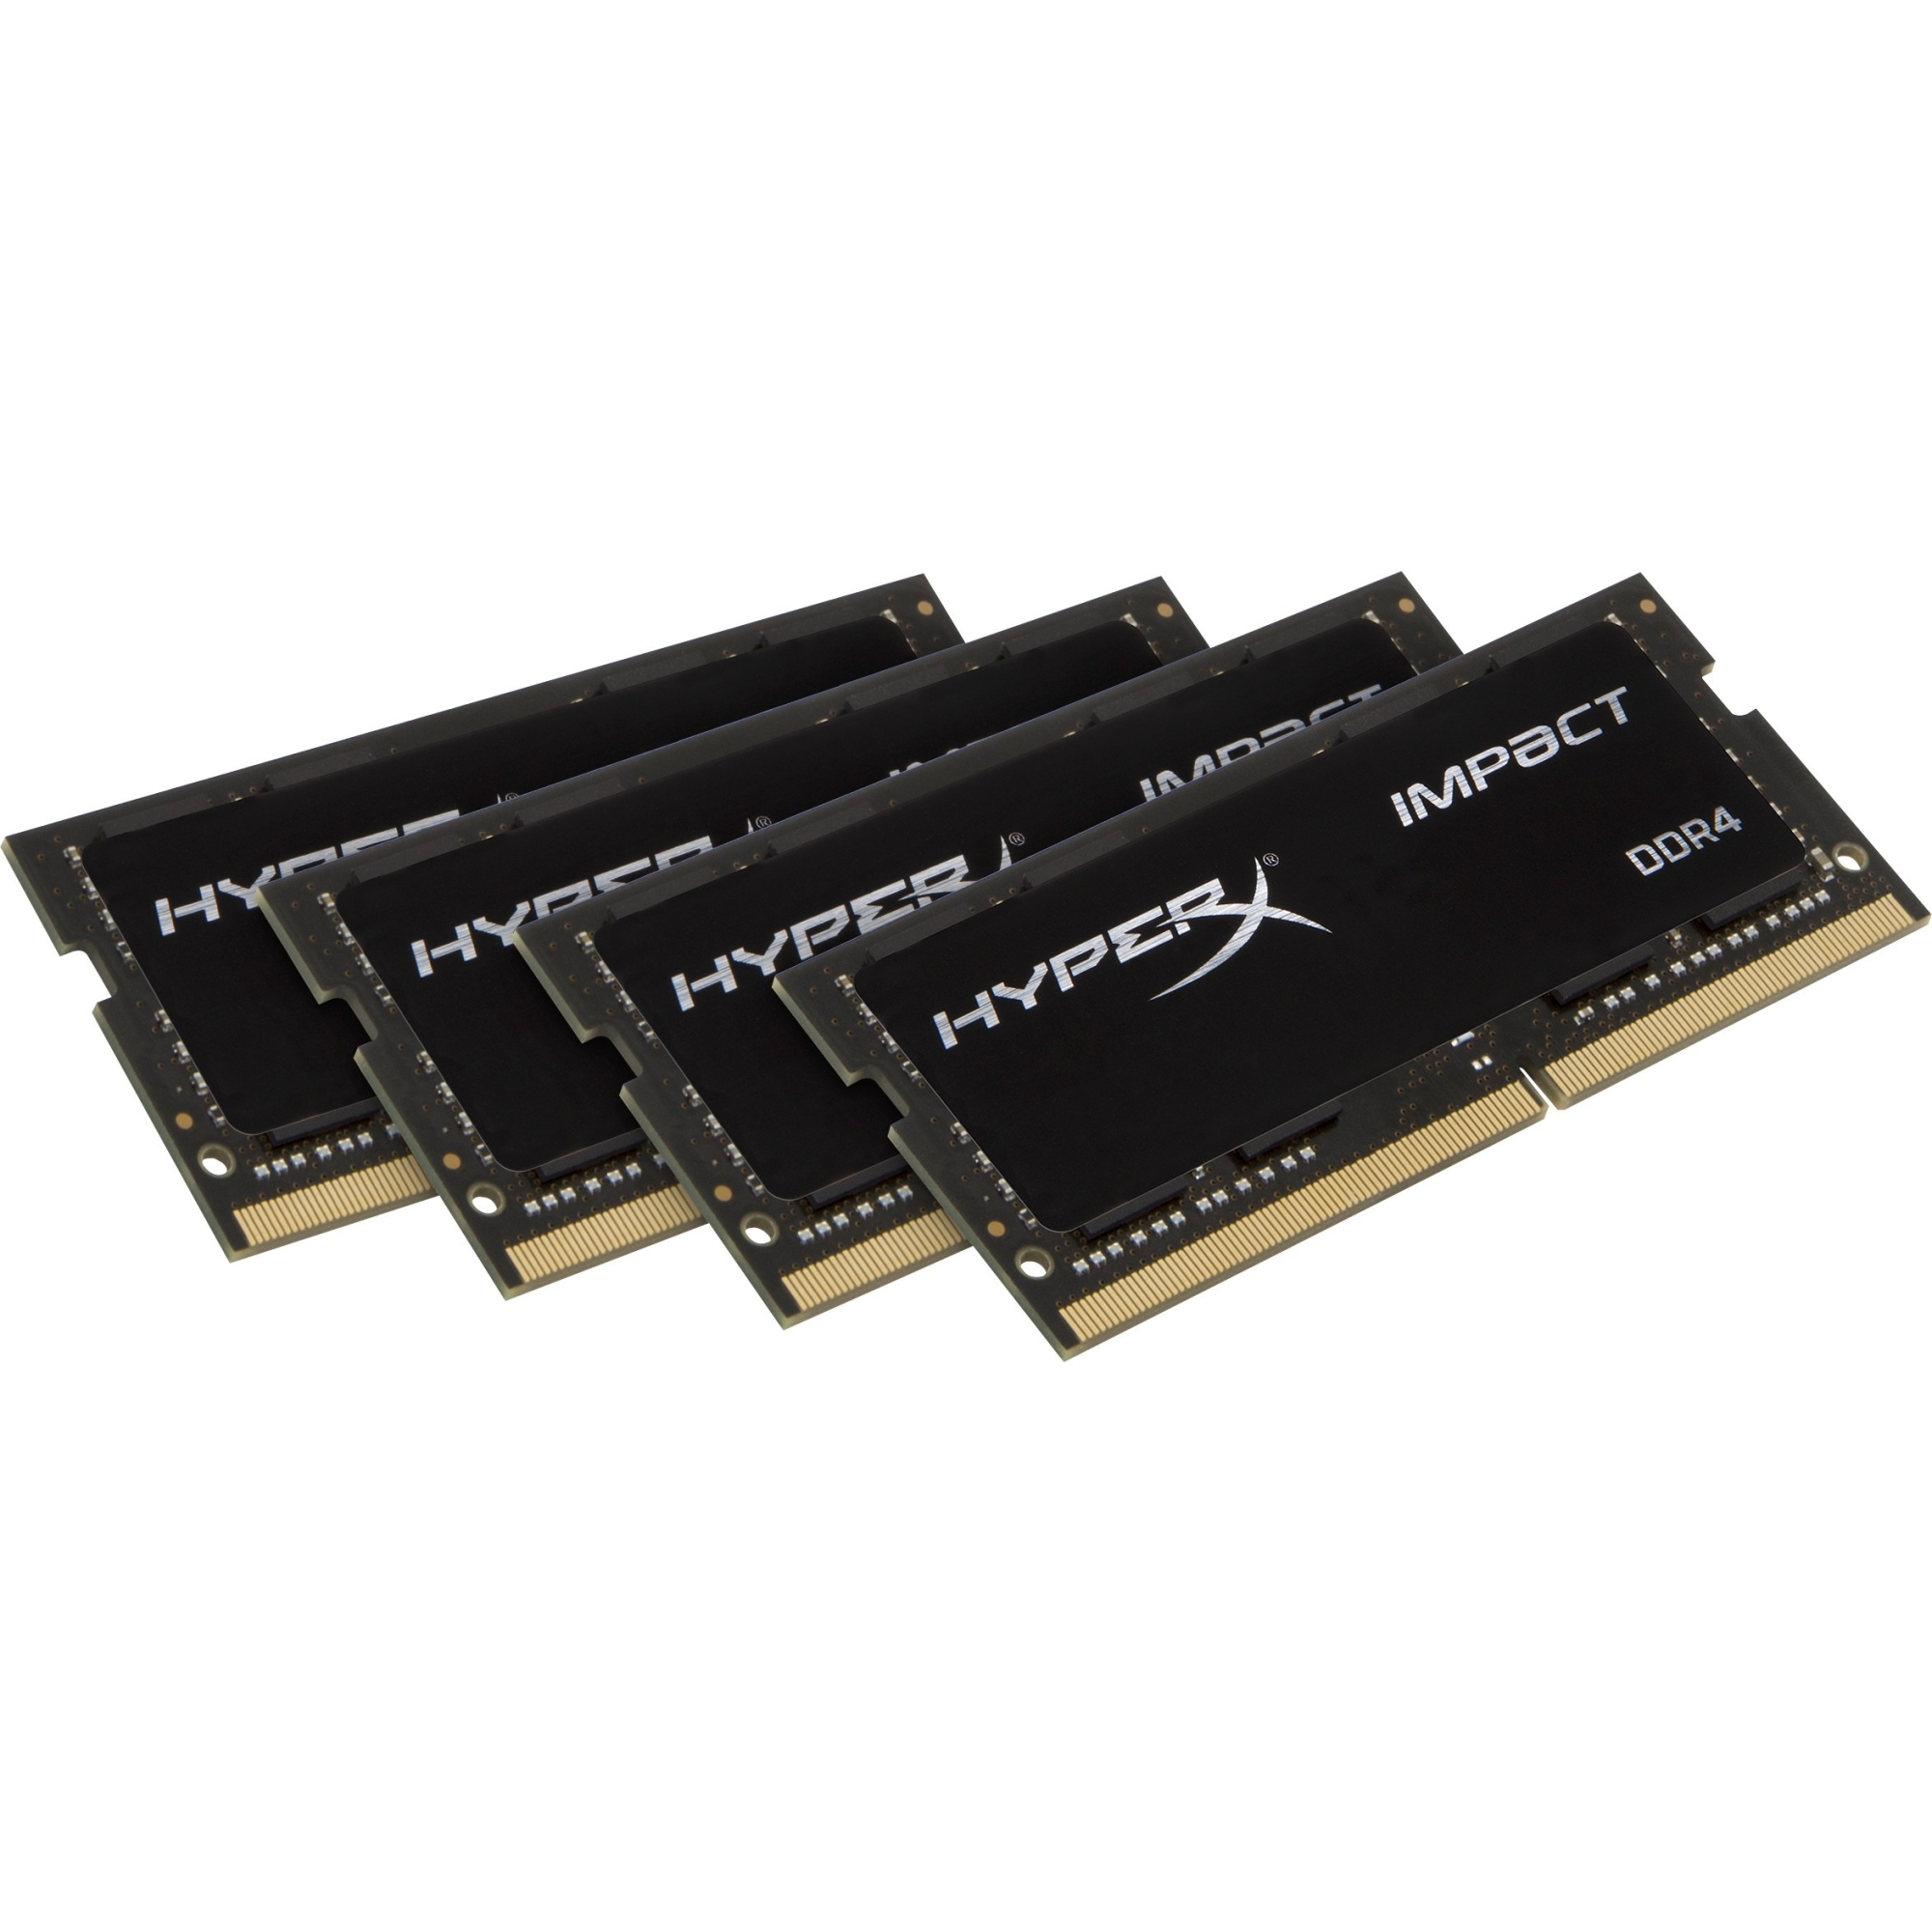 Kingston HyperX Impact SODIMM - 64GB Kit (4x16GB) - DDR4 2400MHz - 64 GB (4 x 16 GB) - DDR4 SDRAM - 2400 MHz DDR4-2400